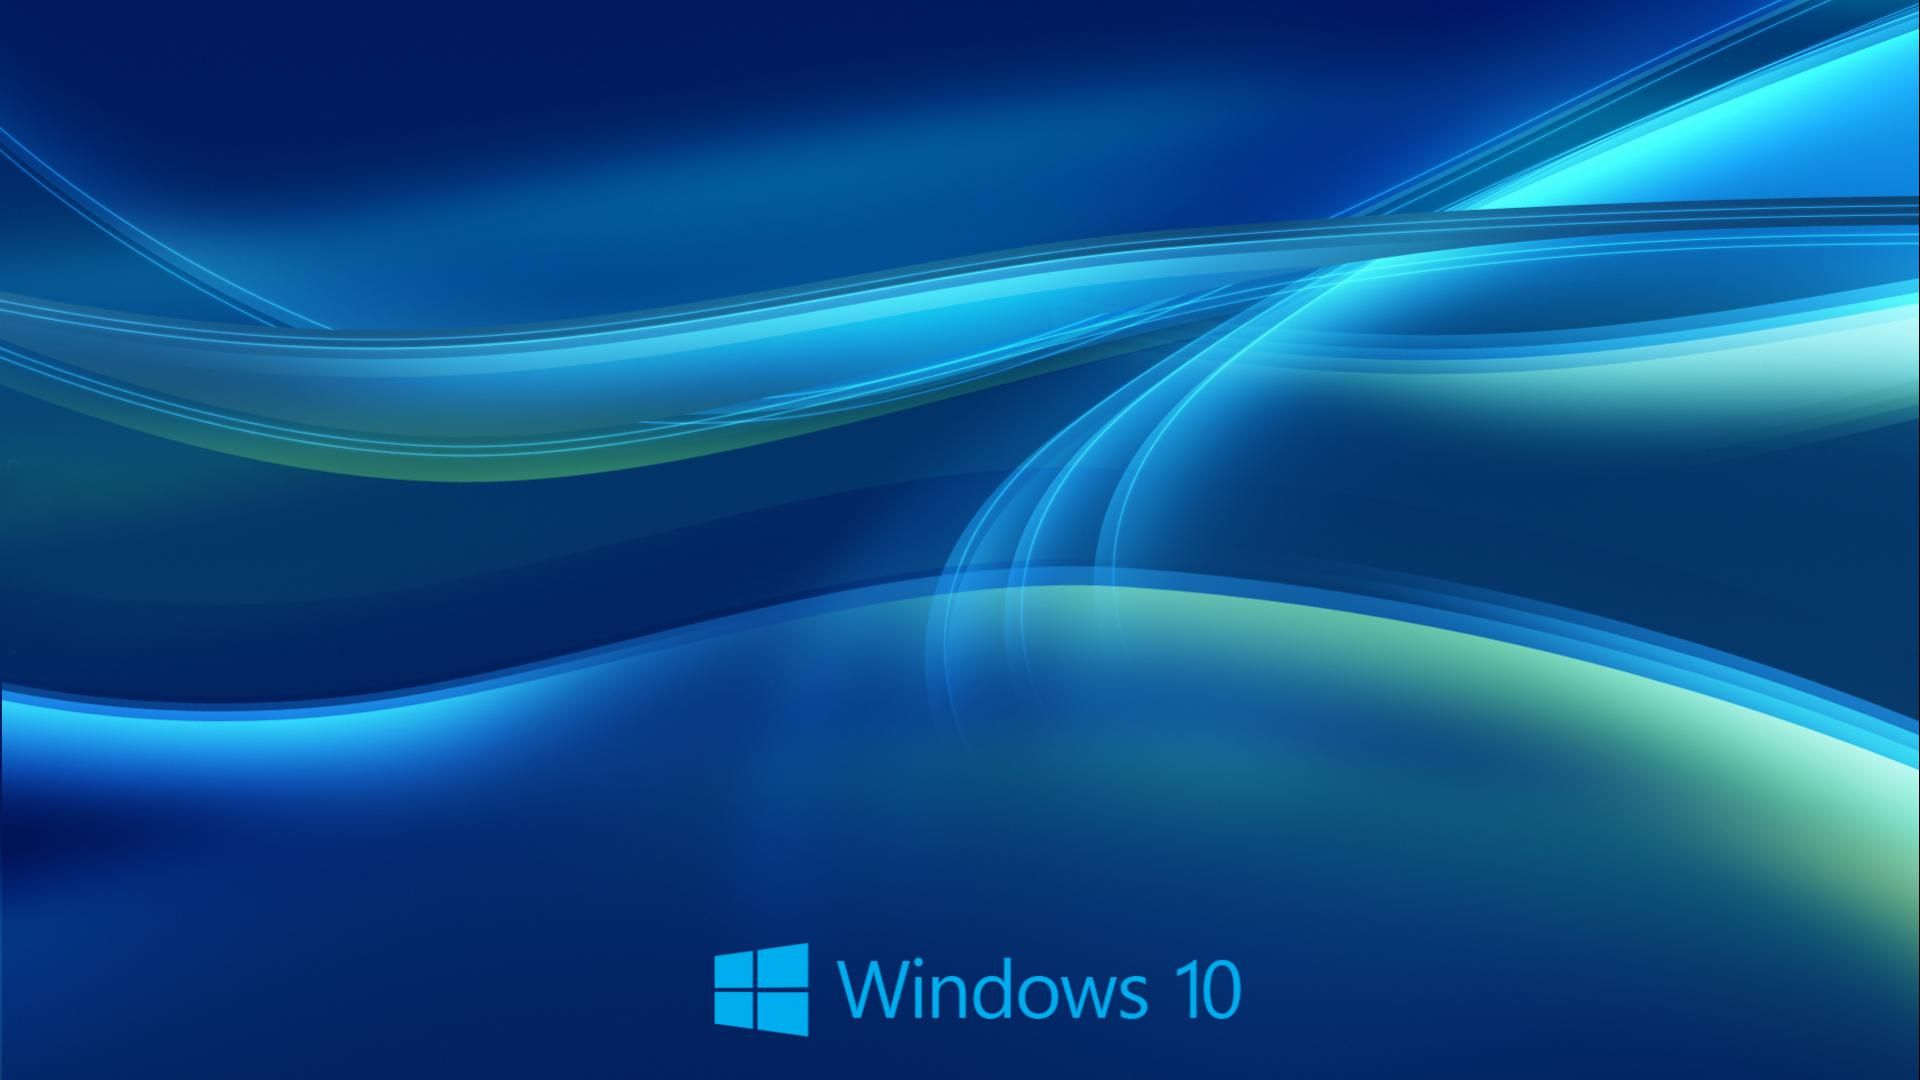 10 New Windows 8 Wallpaper Hd 3d For Desktop Full Hd 1920: Windows 10 HD Wallpaper 1920x1080